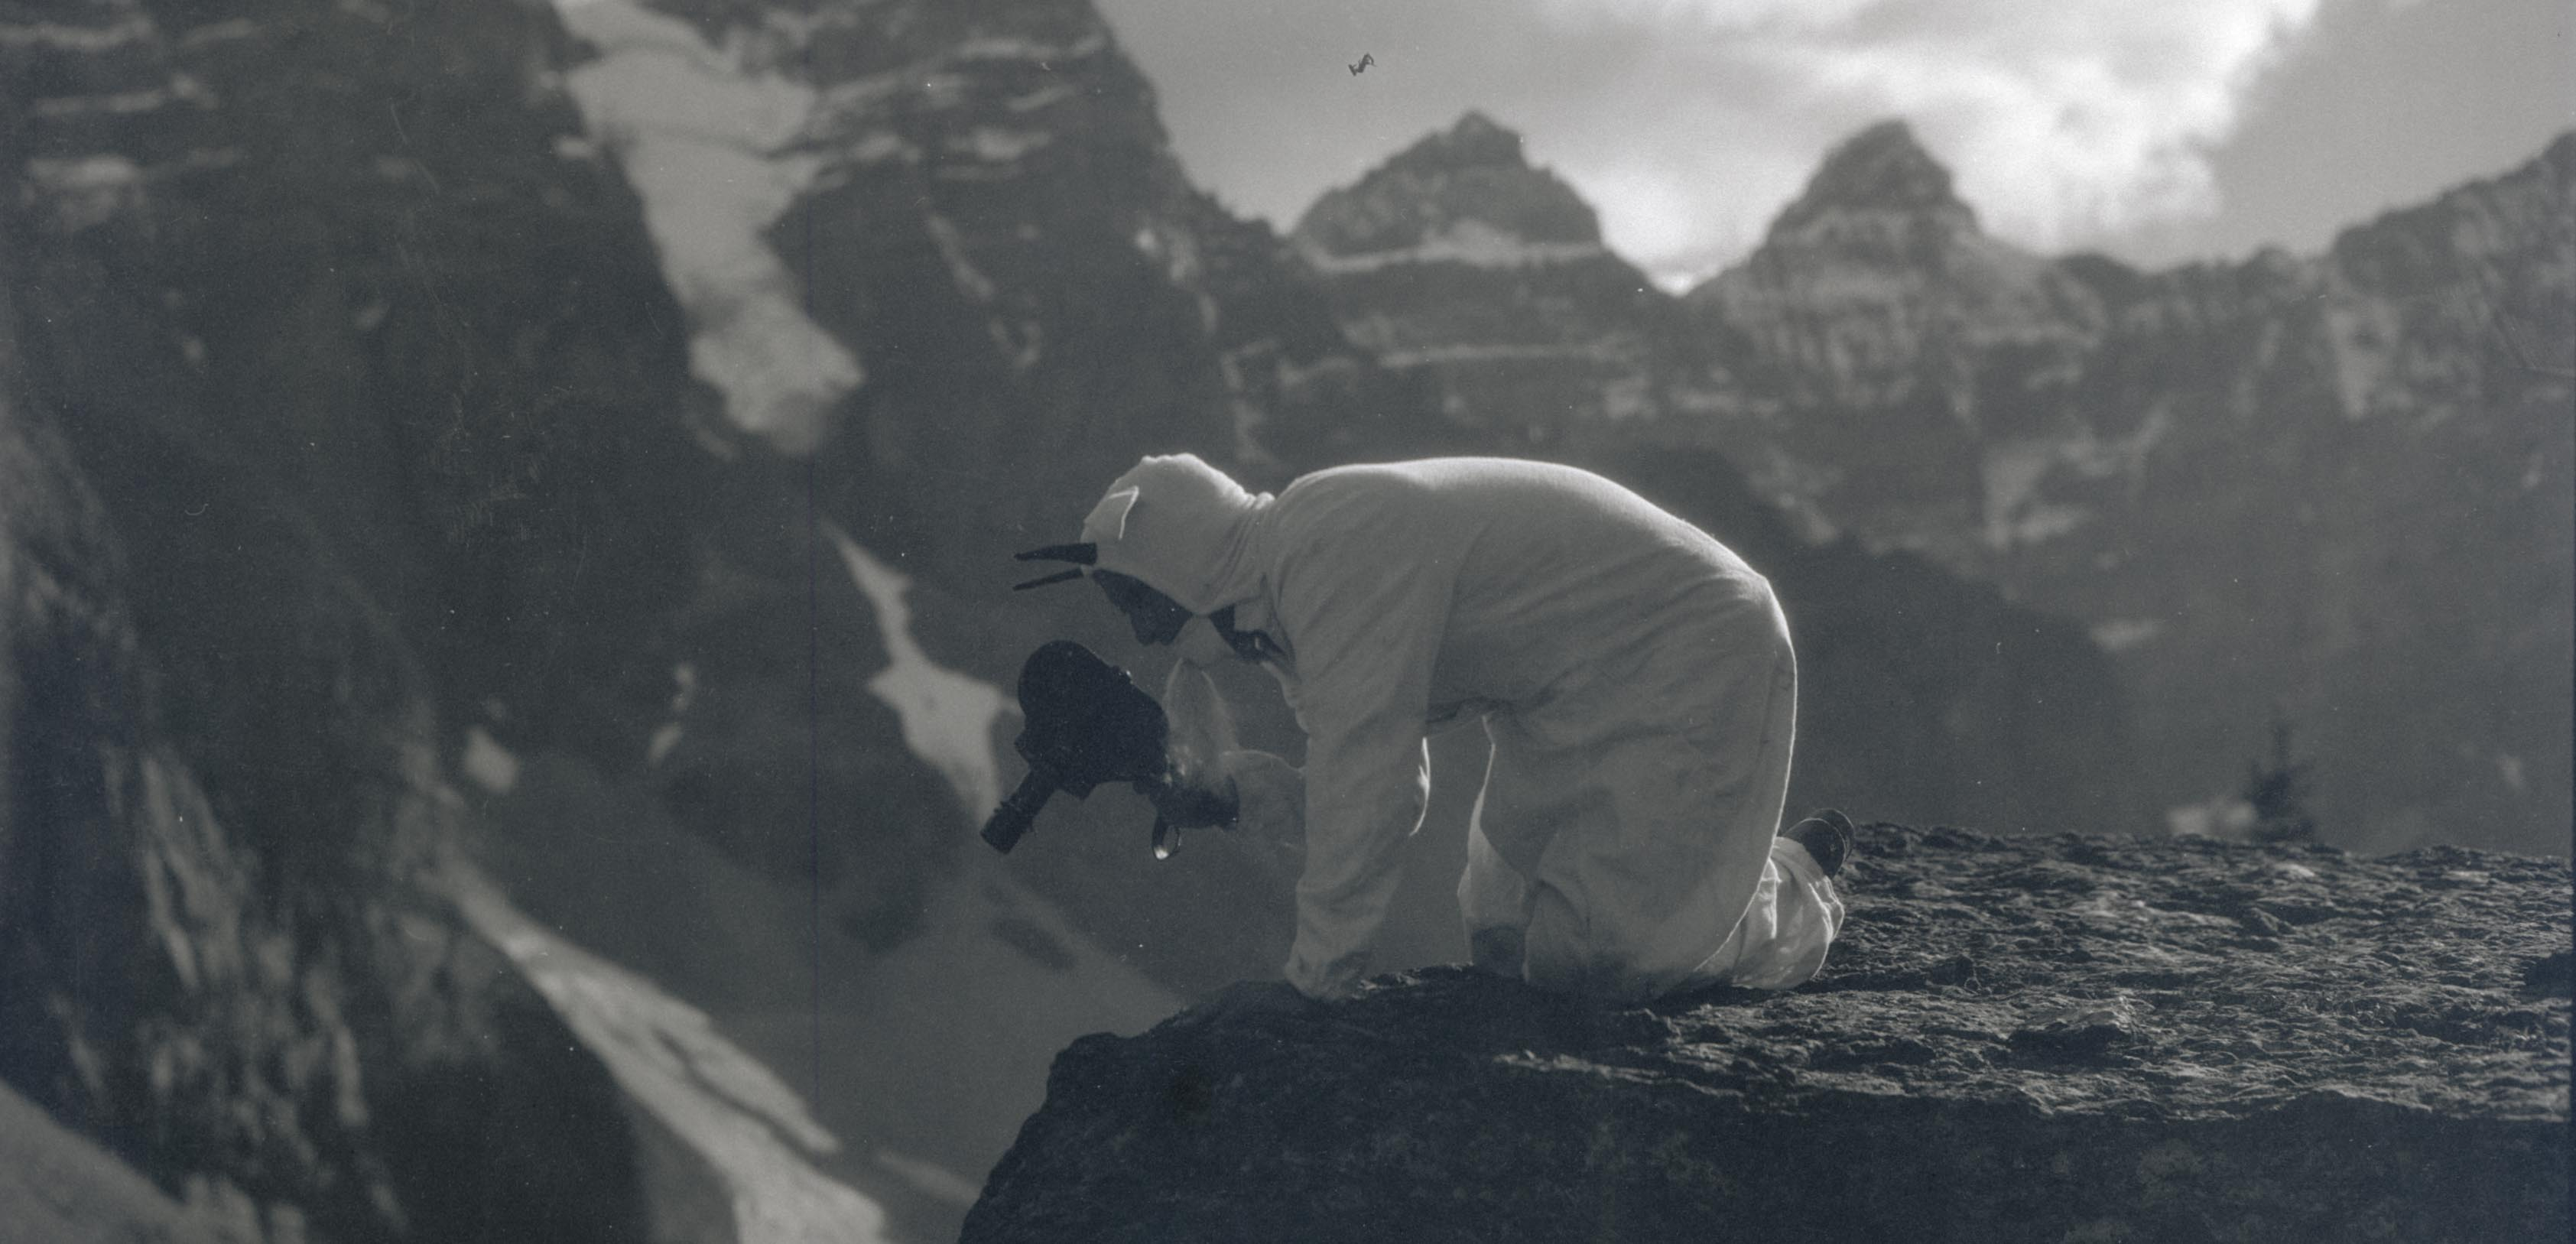 William Finley filming while dressed as a goat. Glacier Park, Montana, 1929.  OHS Research Library, Org. Lot 369, Finley D1024.